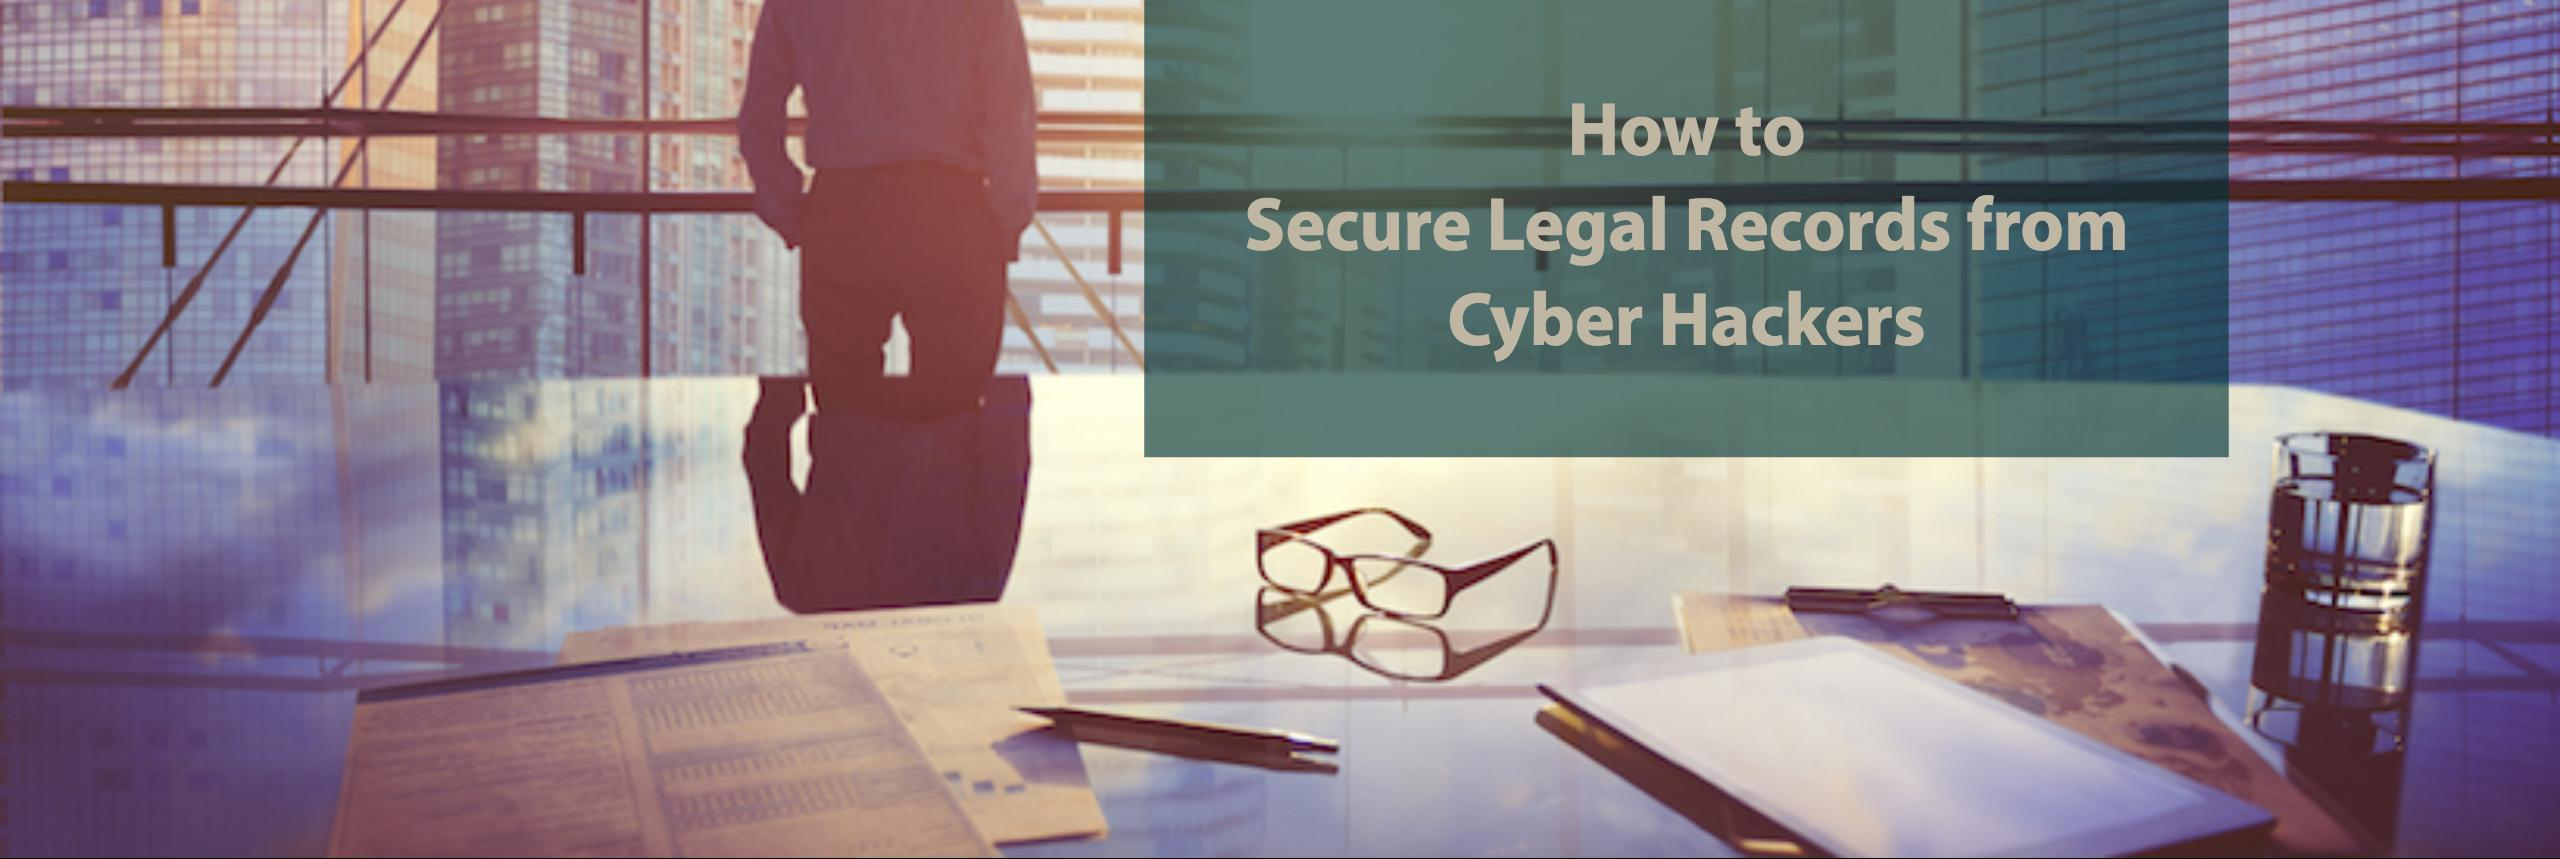 How to Secure Legal Records from Cyber Hackers